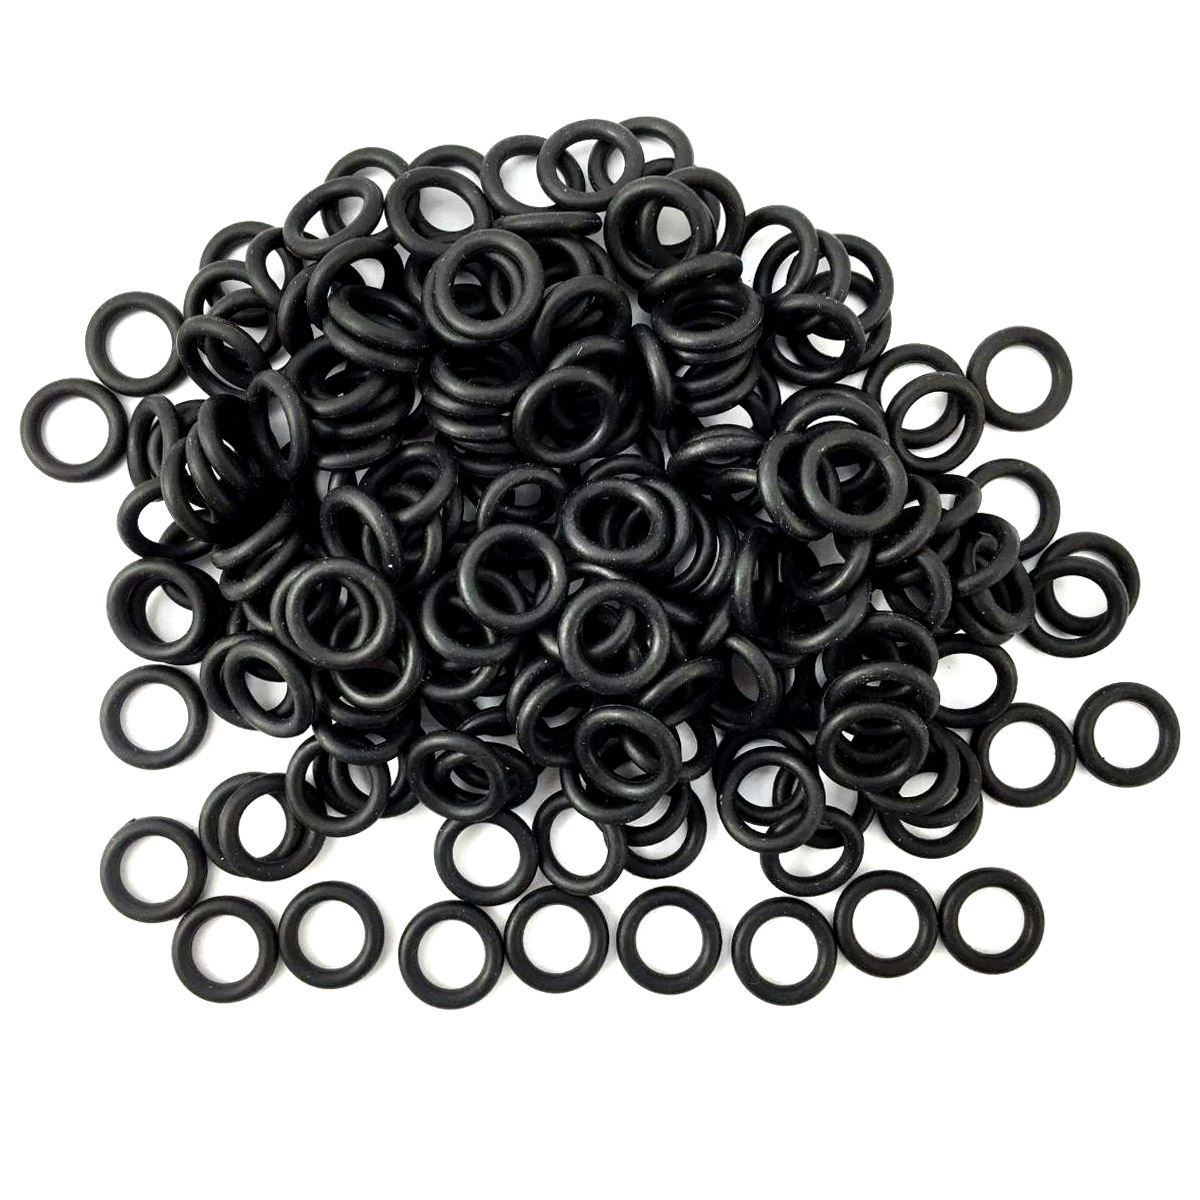 Lot 50pcs O-Rings /& Screws O-Rings bands GI Joe Cobra Action Force orings toys